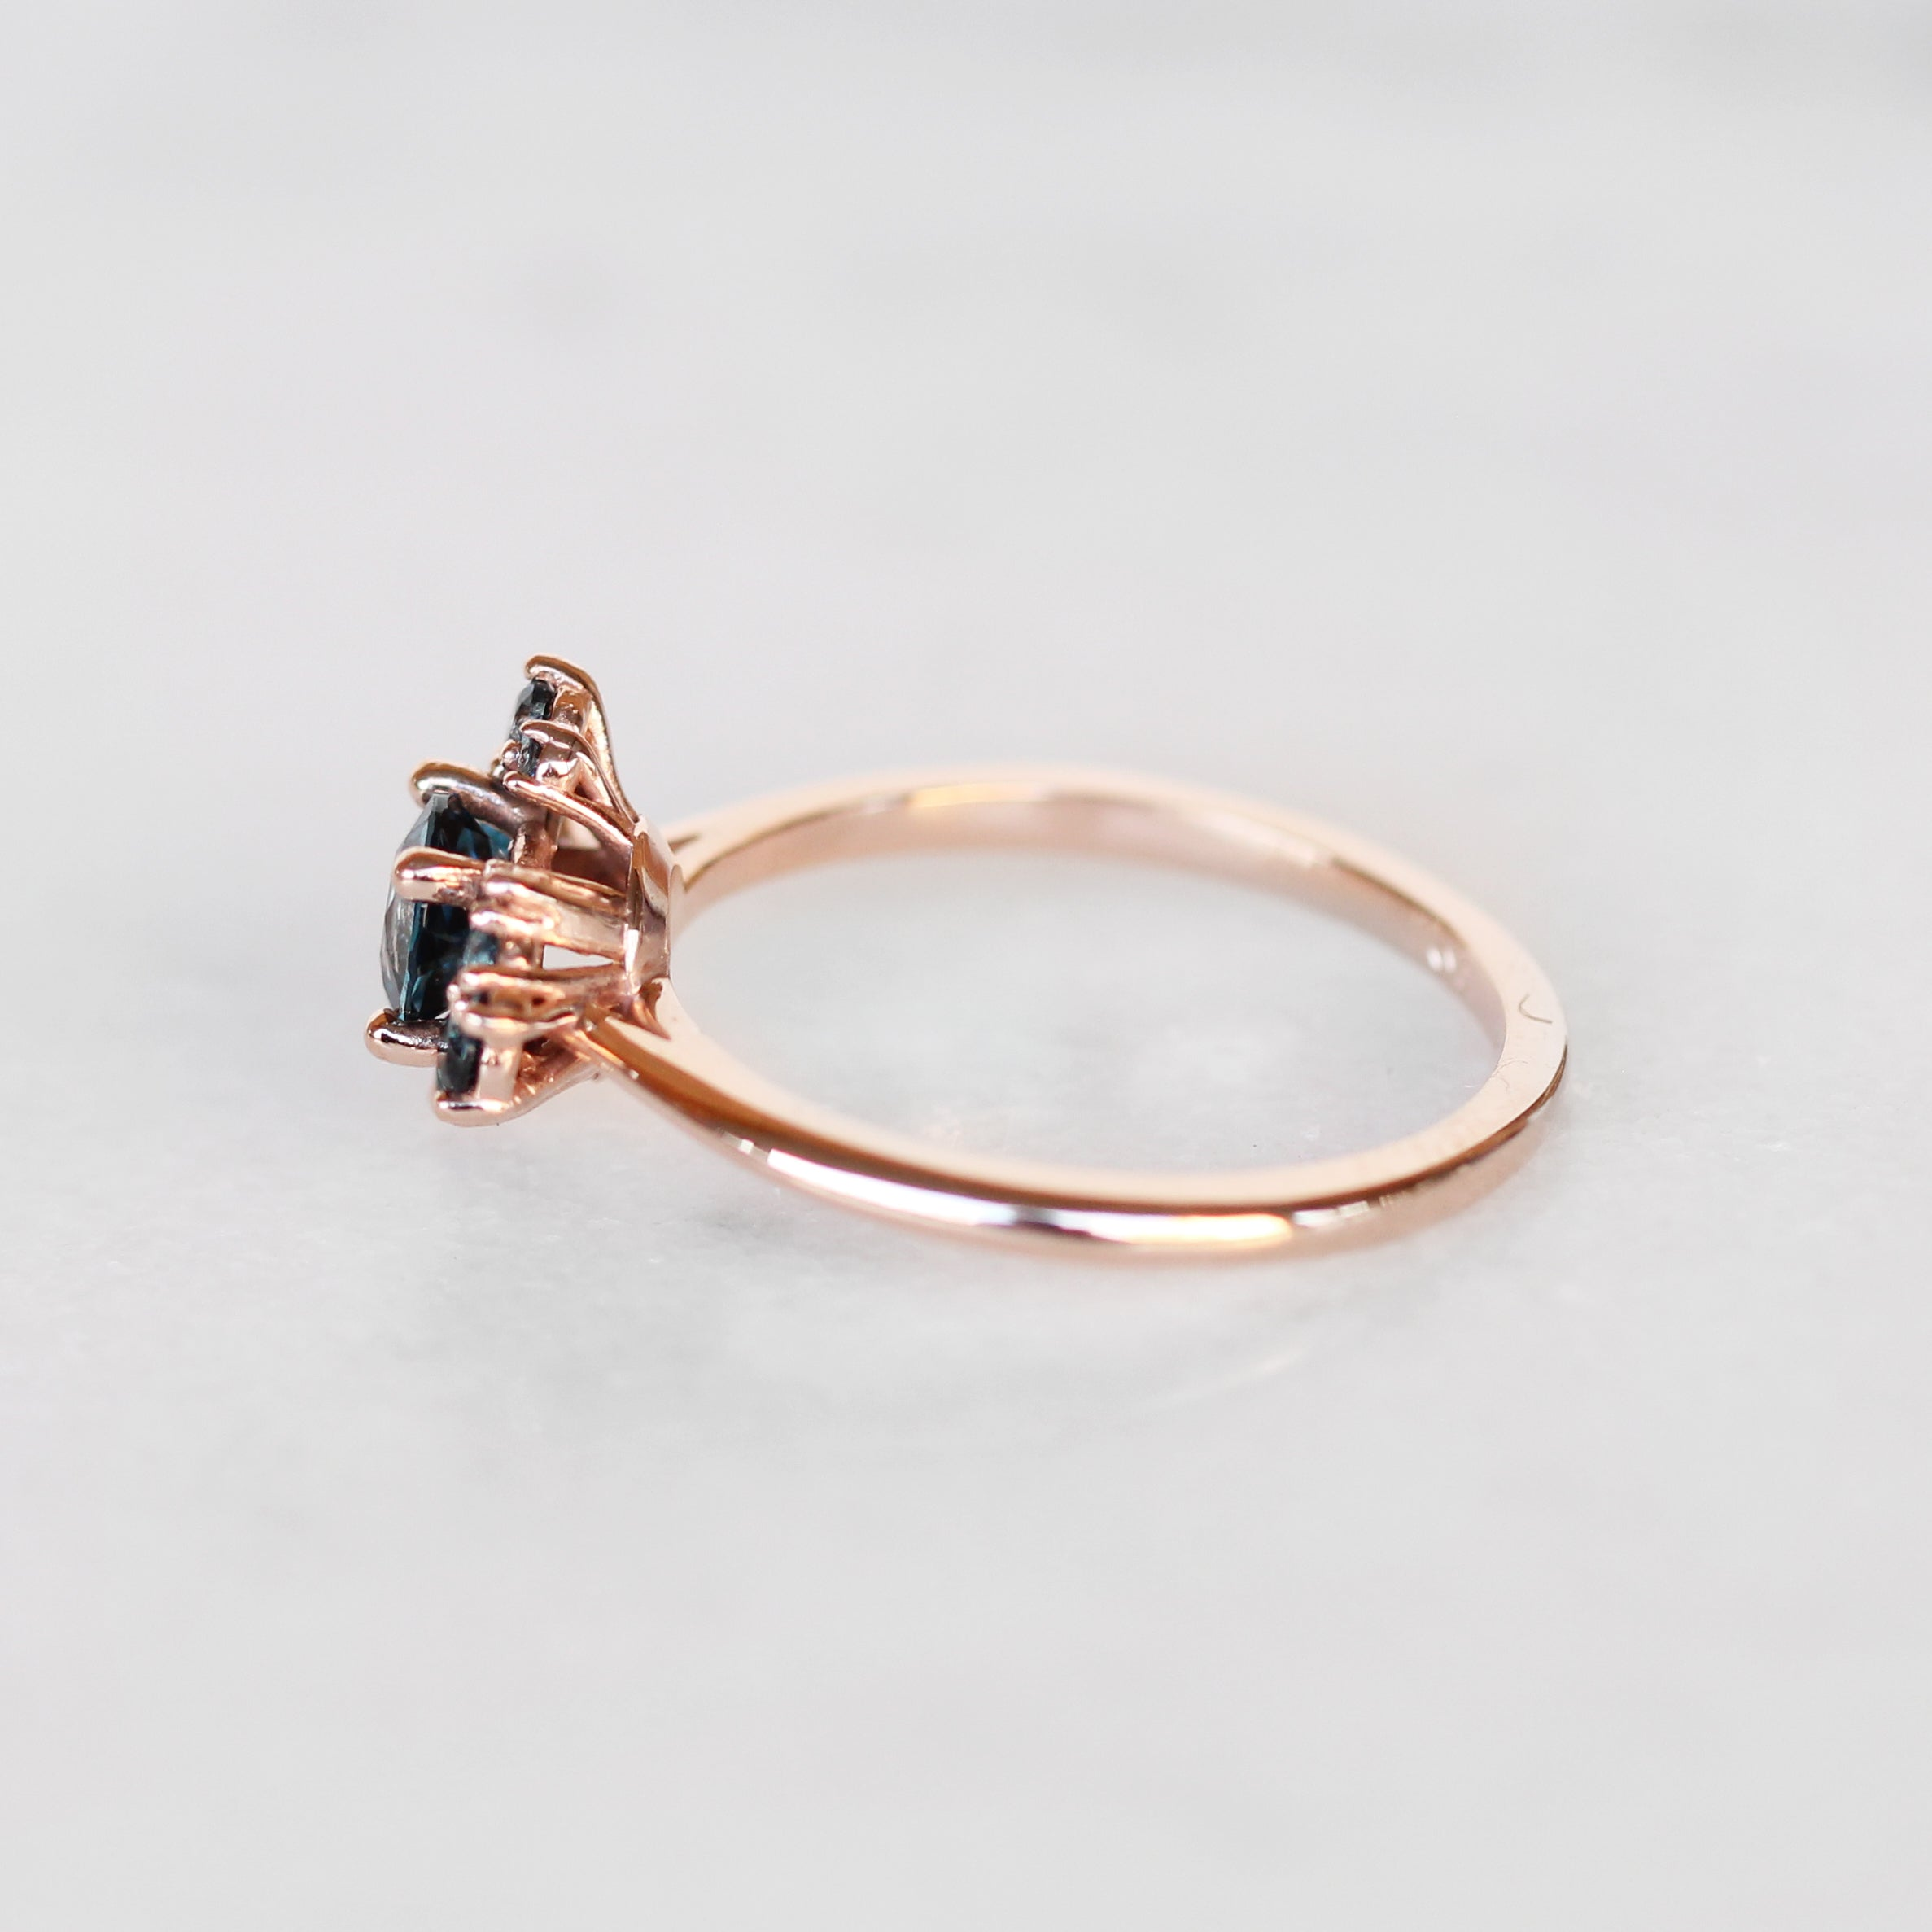 Orion Ring with all London Blue Topaz in 10k Rose Gold - Ready to Size and Ship - Celestial Diamonds ® by Midwinter Co.